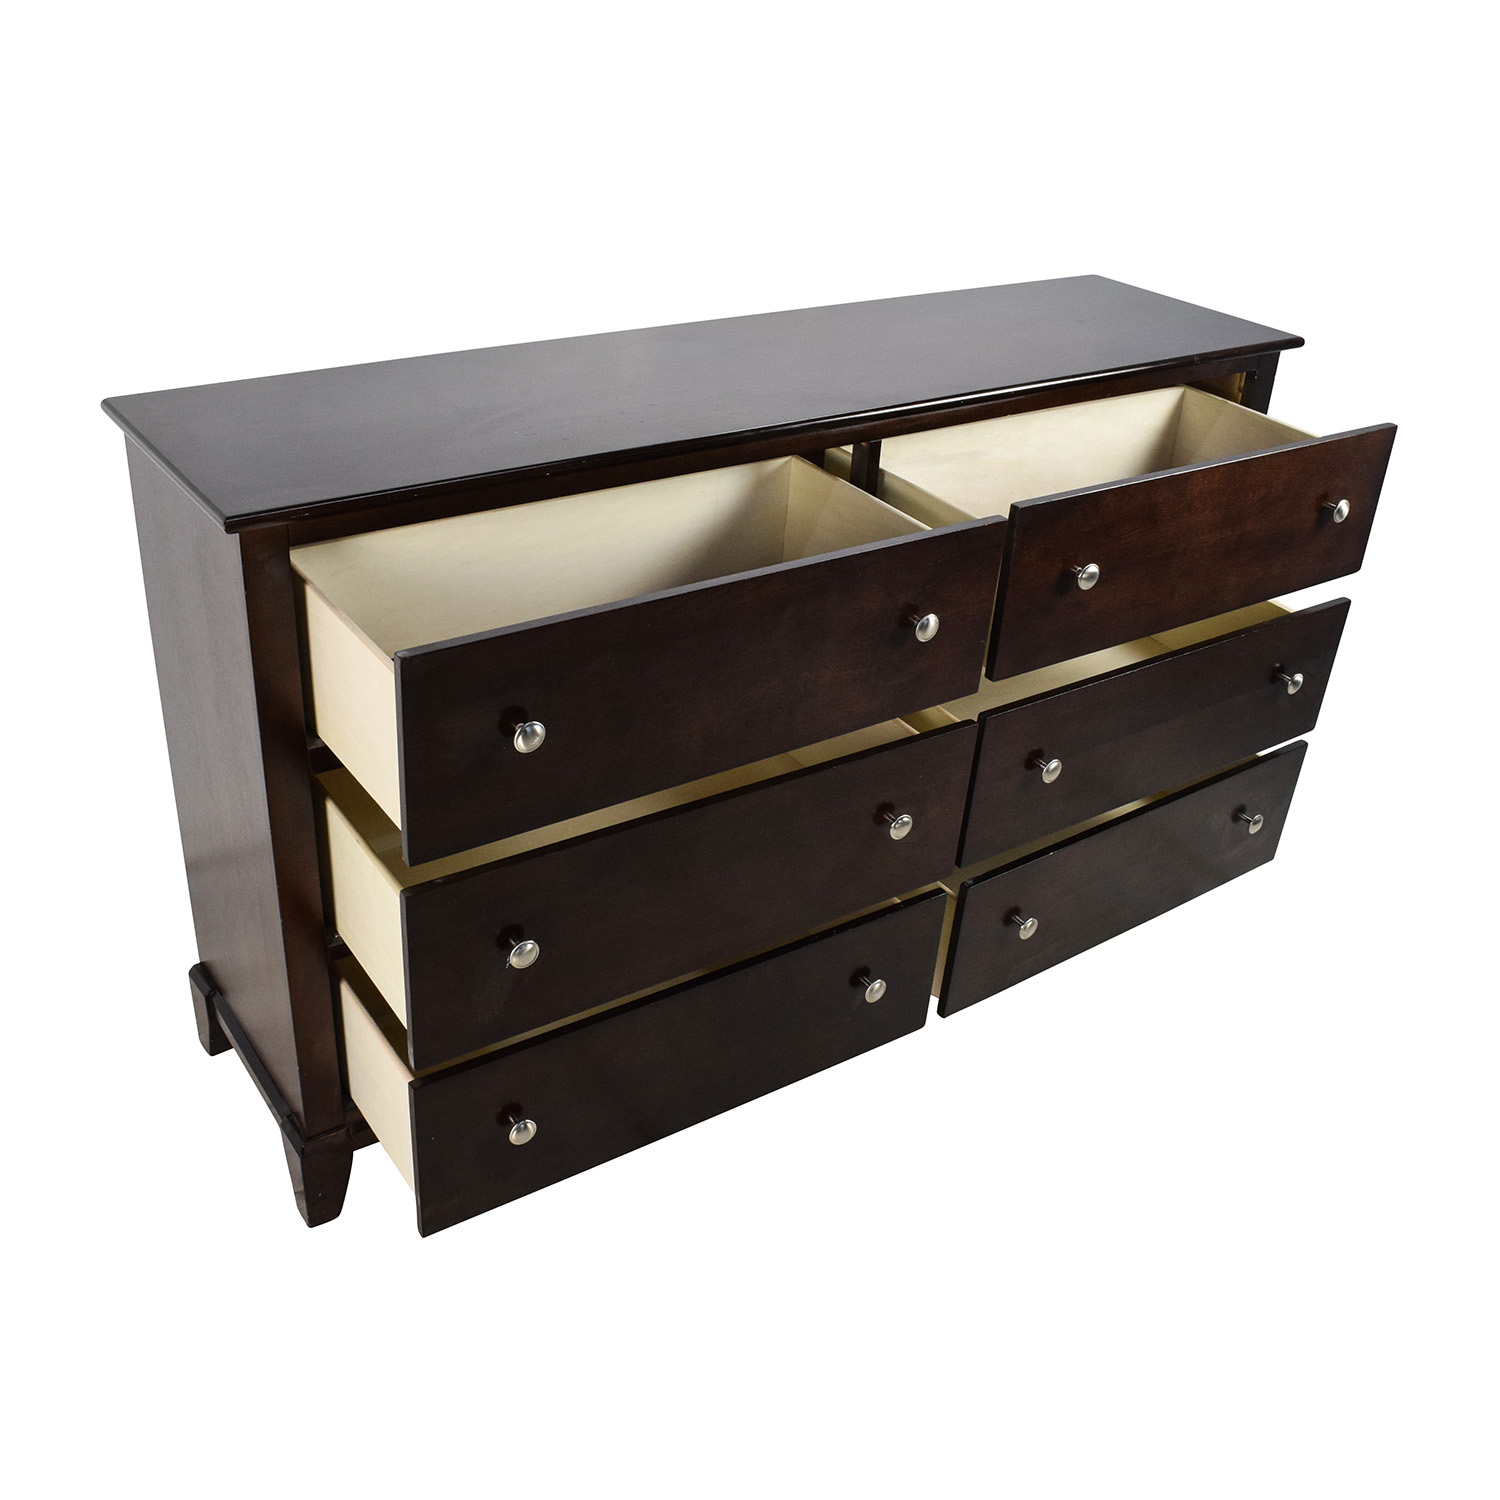 64% OFF - Bob\'s Discount Furniture Bob\'s Furniture Large 6-Drawer Dresser /  Storage